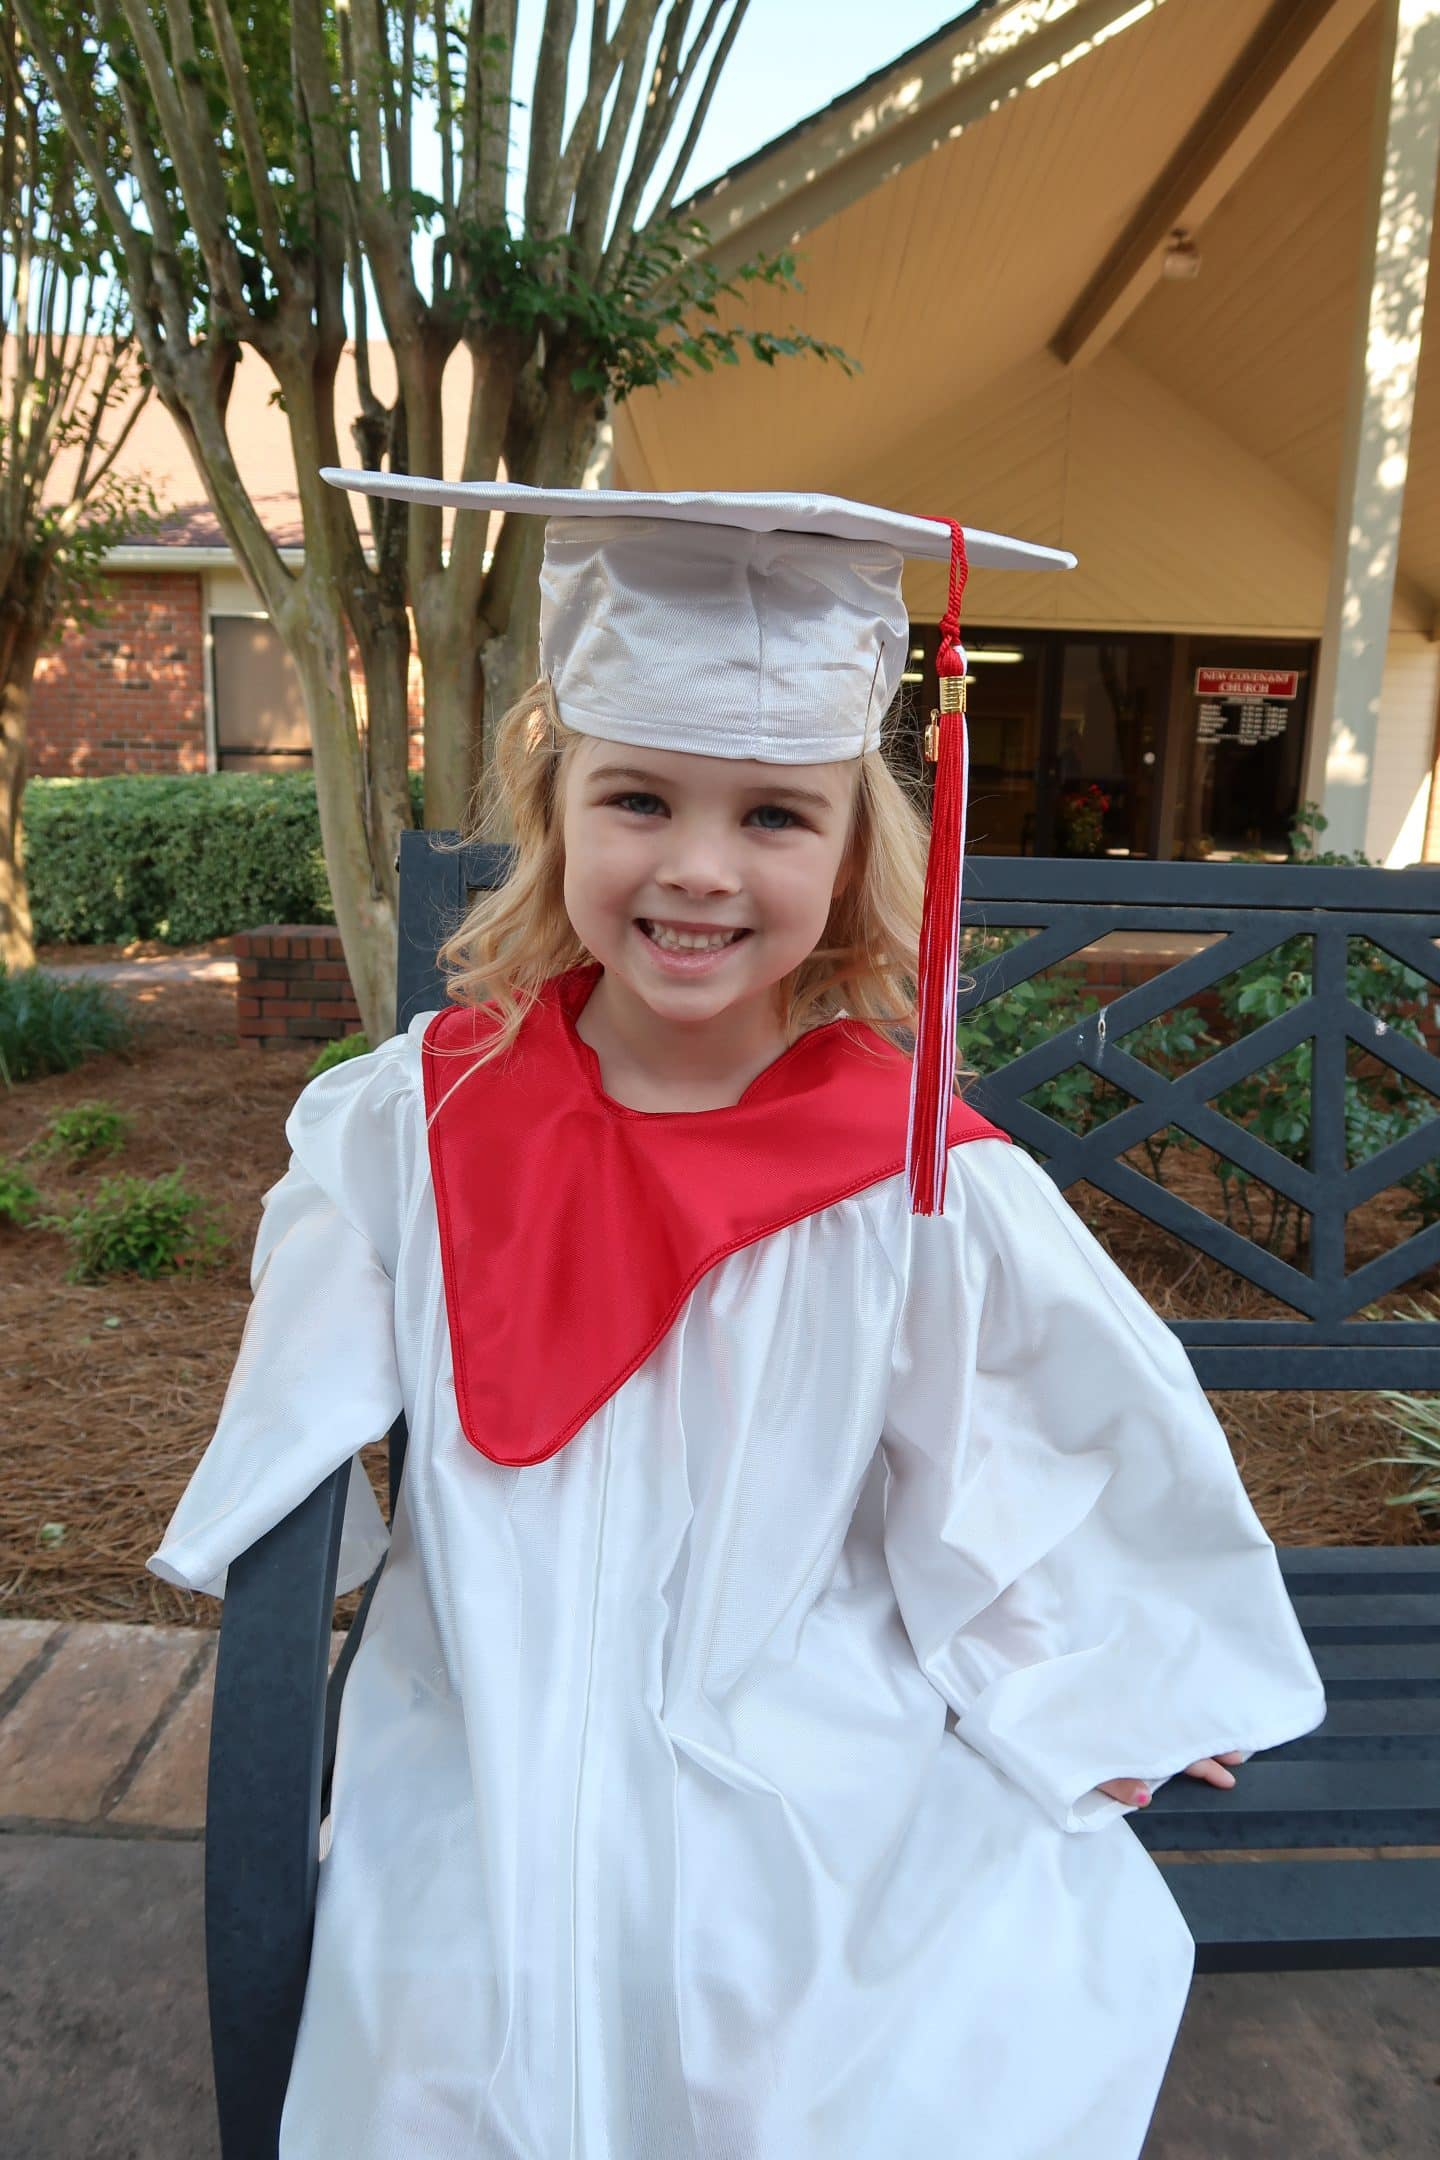 Tess's Preschool Graduation